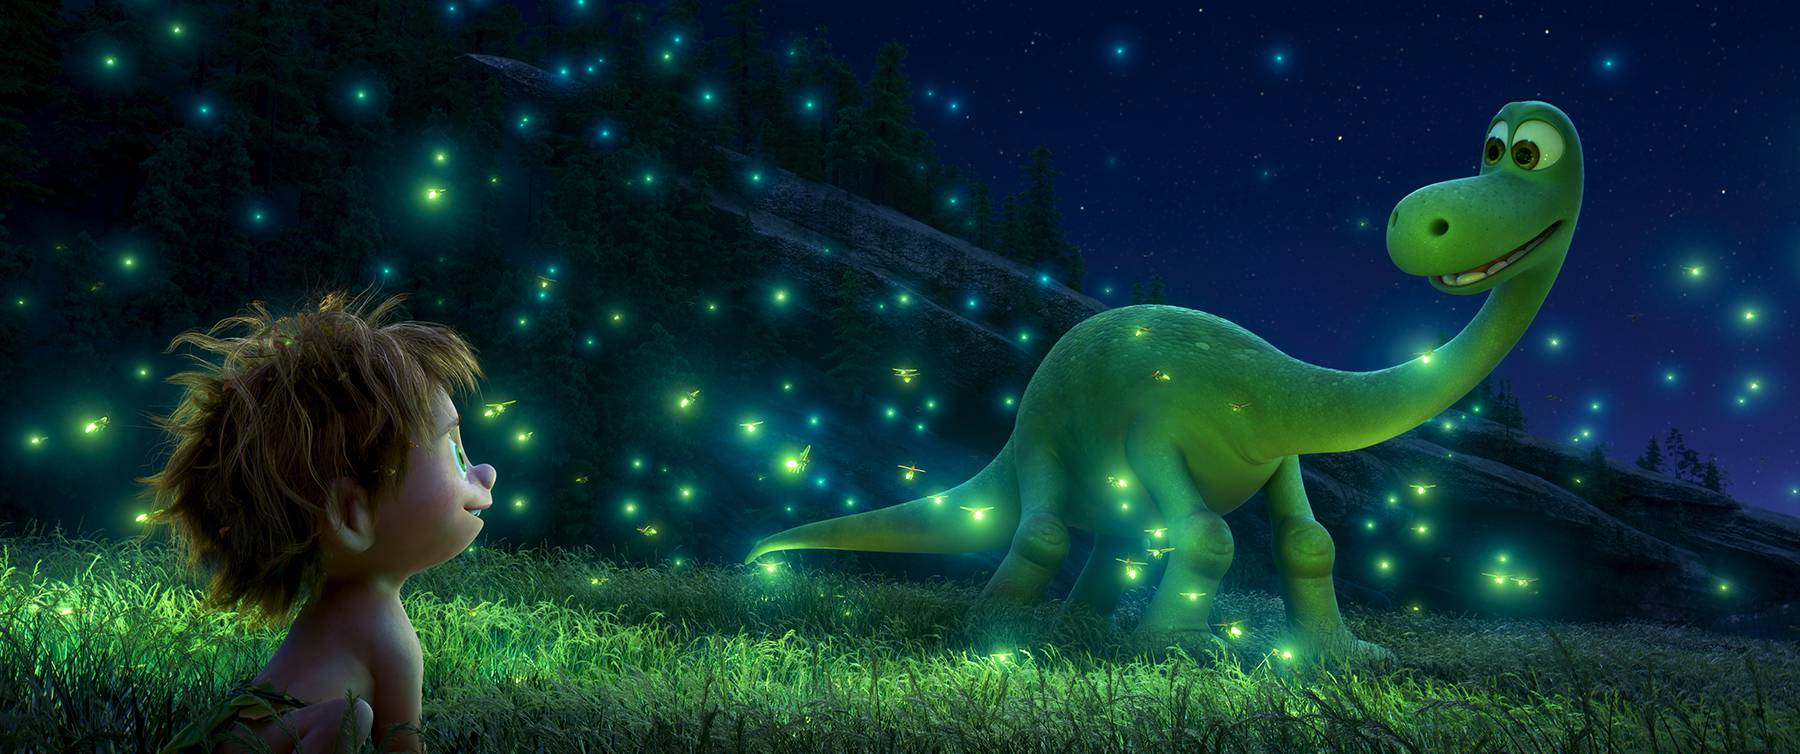 An Apatosaurus named Arlo makes an unlikely human friend in Disney-Pixar's 'The Good Dinosaur'.